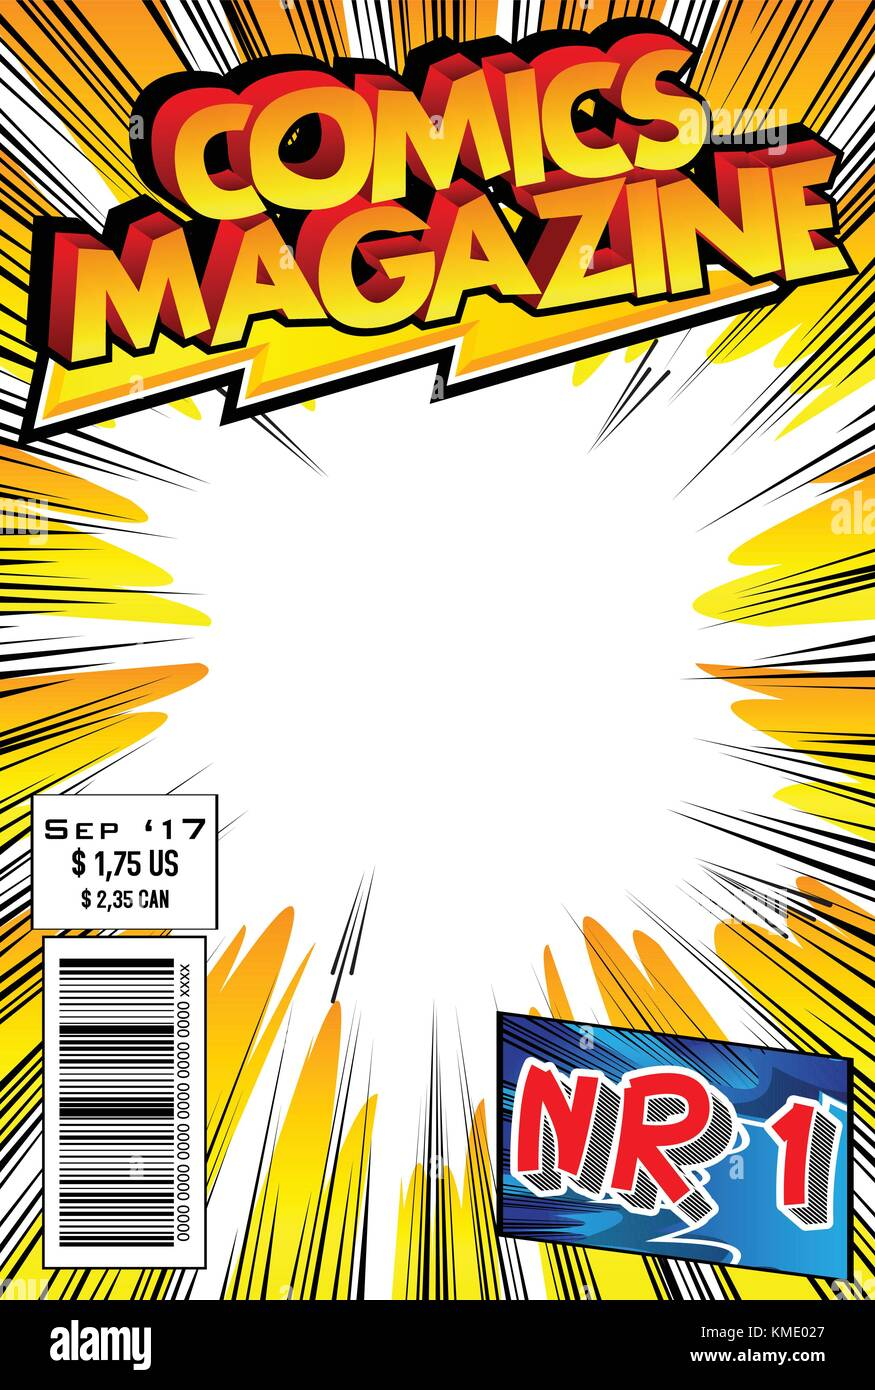 comic book cover stock photos comic book cover stock images alamy. Black Bedroom Furniture Sets. Home Design Ideas